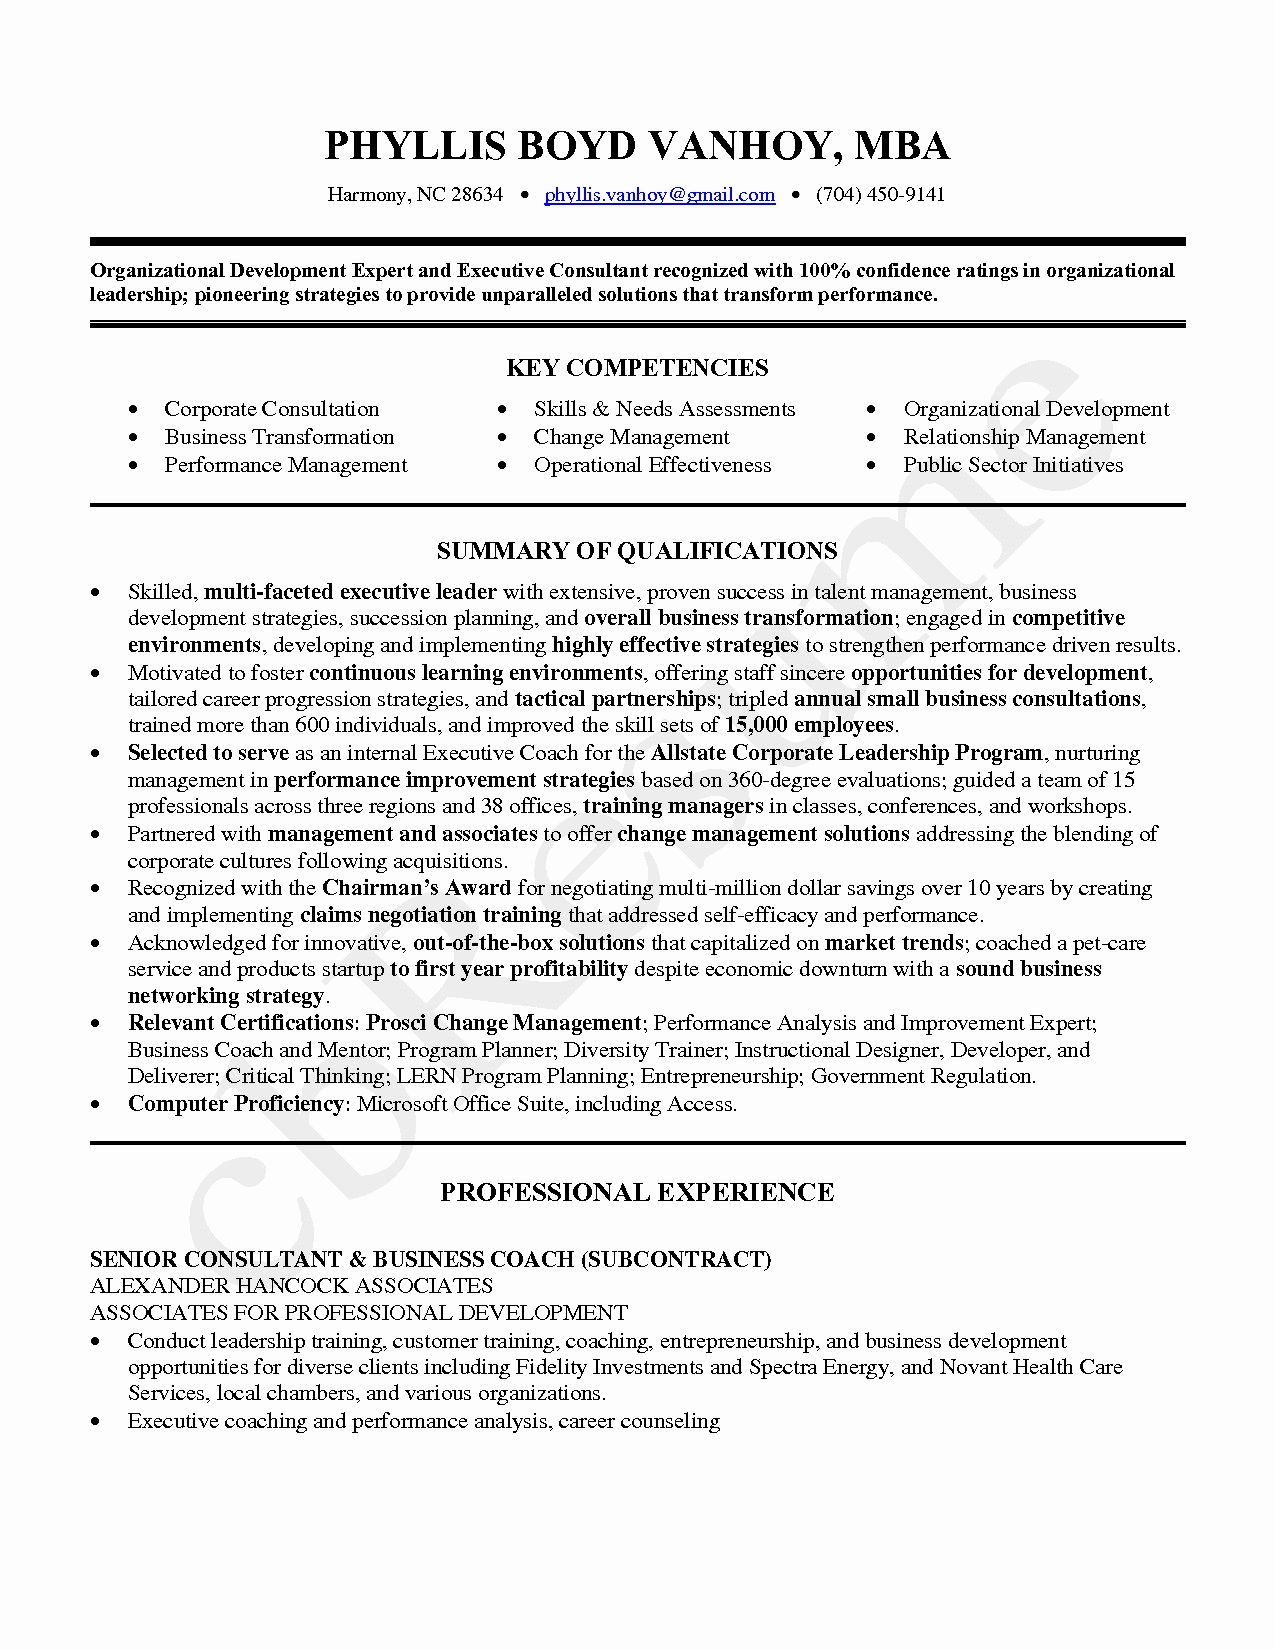 Cover Letter Template for Google Docs - Unique Google Docs Book Template